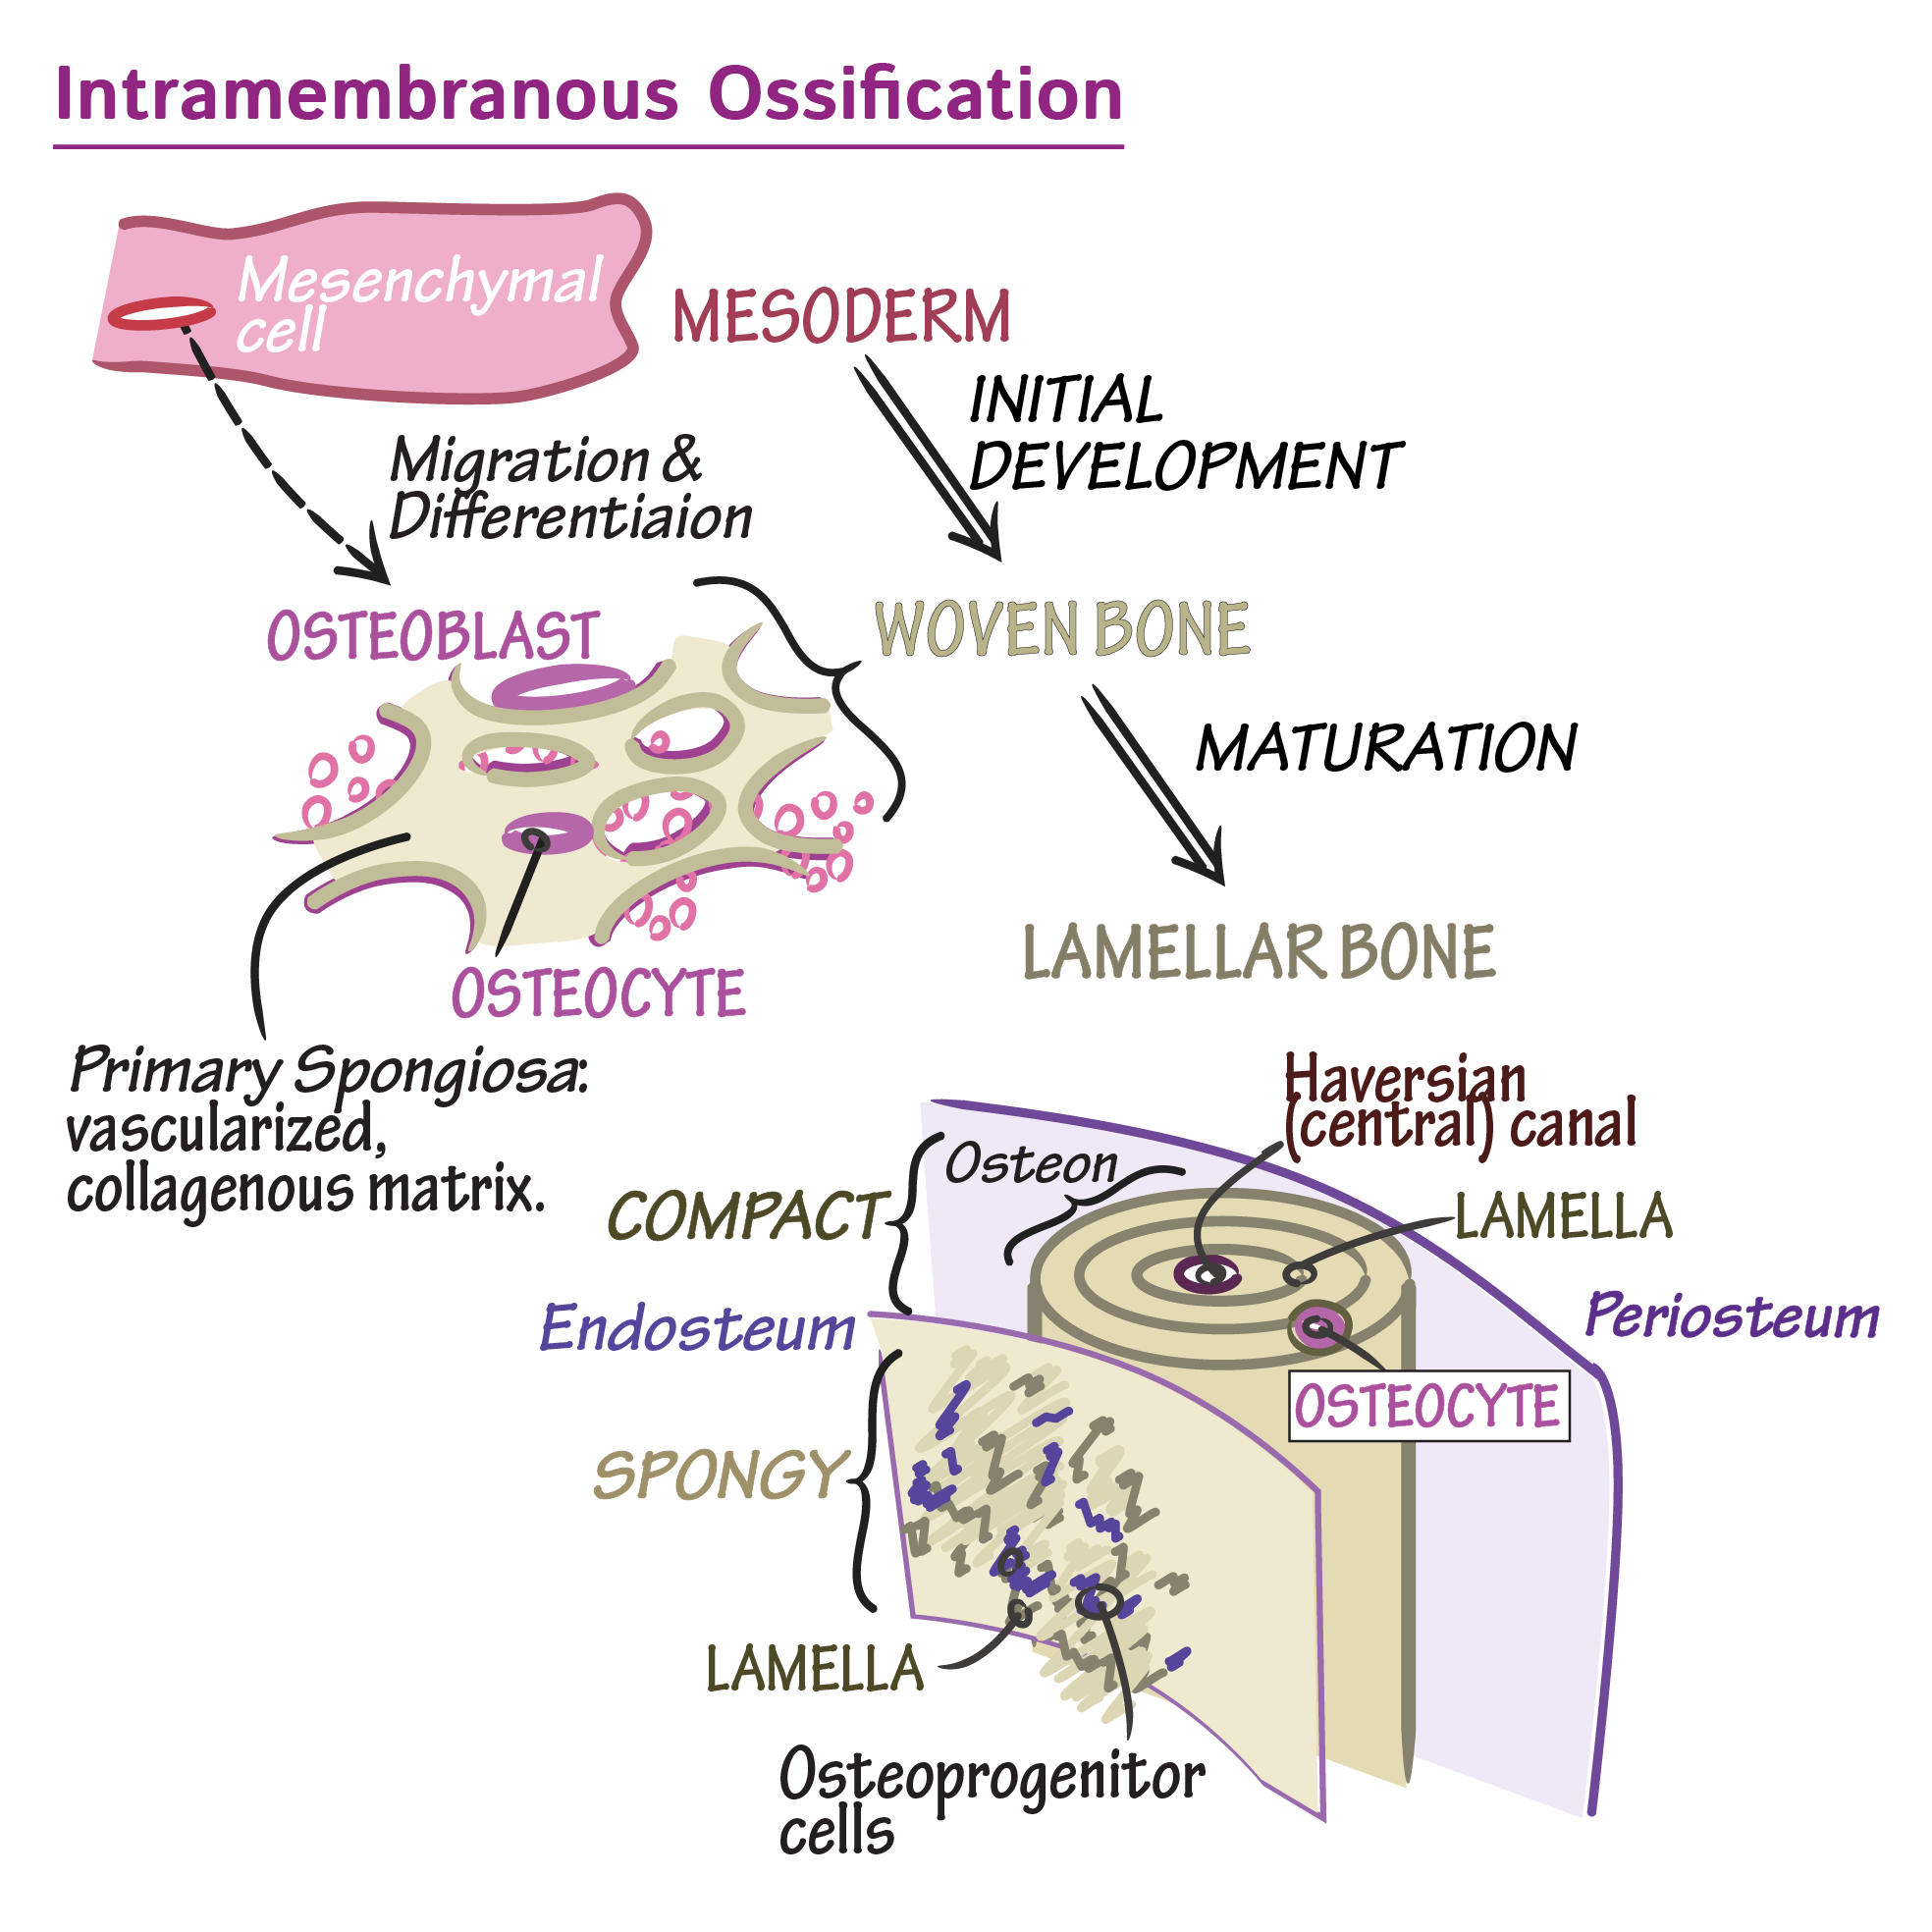 Migration drawing development. Histology glossary intramembranous ossification